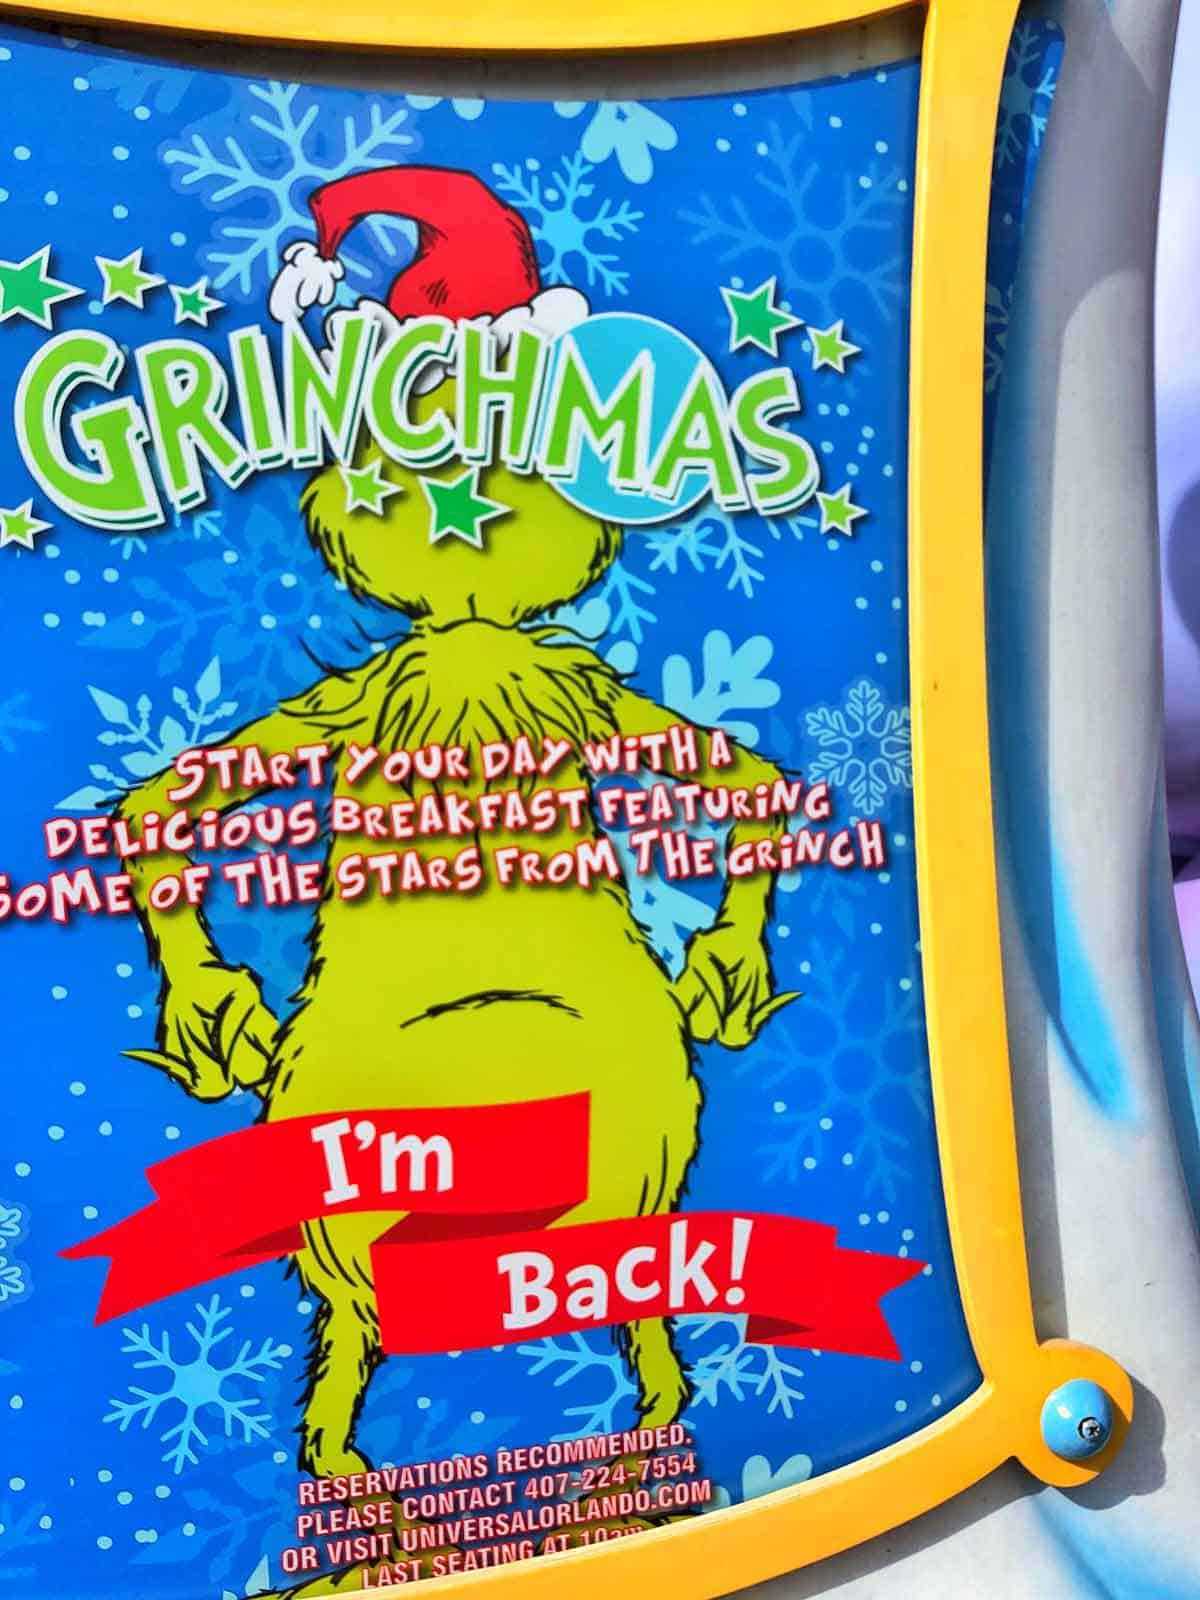 breakfast-with-grinch1